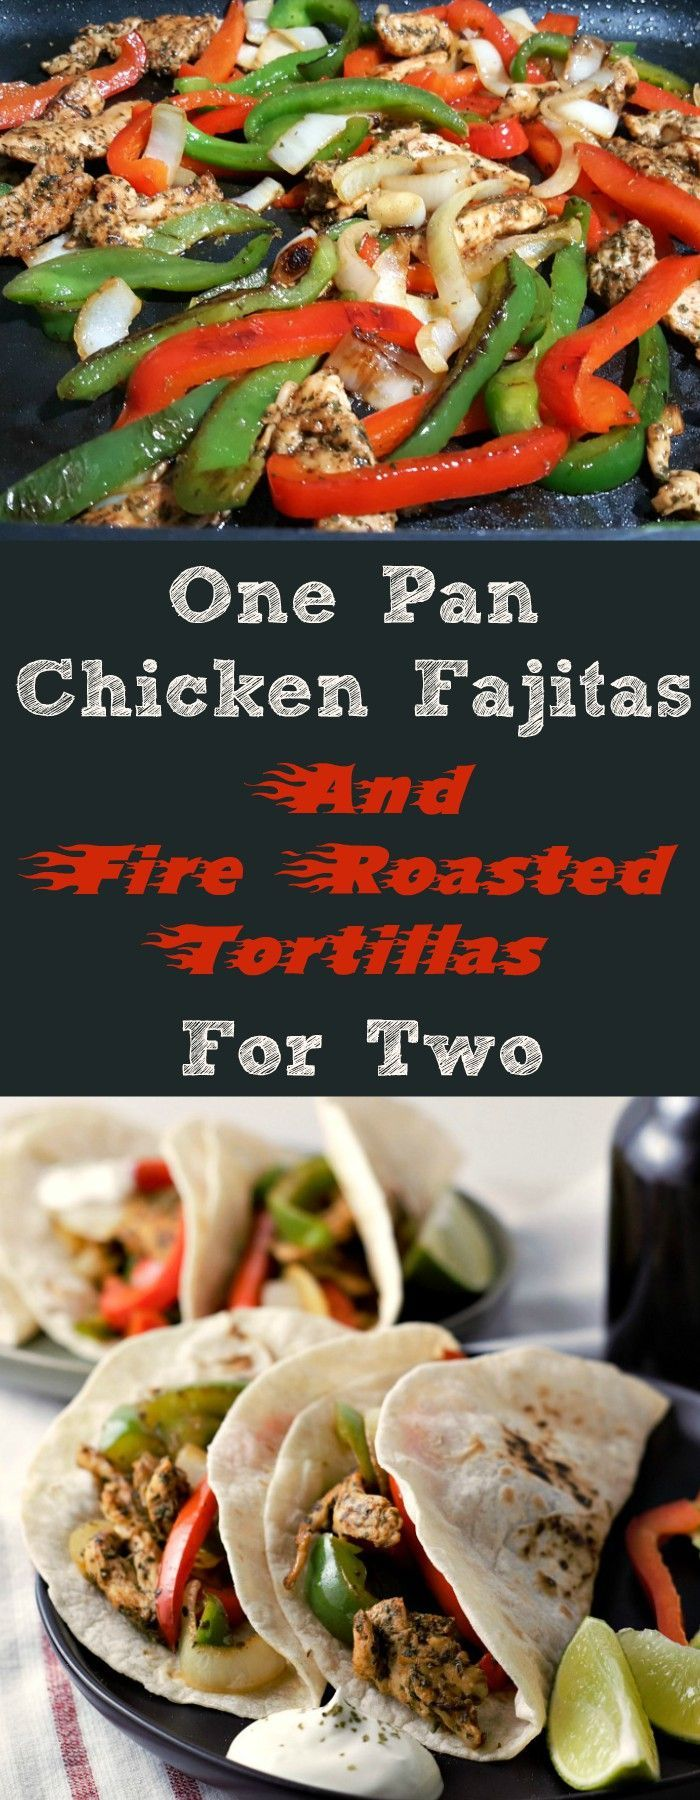 One Pan Chicken Fajitas have onion, red pepper, and green pepper stir fried to perfection and thin chicken strips seared in homemade fajita seasoning. The fire roasted tortillas, while optional, take this dish from really good to super extra delicious! This easy recipe is made in just one skillet and ready in less than 25 minutes. Try it for lunch, dinner, game day, or a romantic meal for two. #ChickenFajitas #fajitas #DinnerForTwo #LunchForTwo #RecipesForTwo